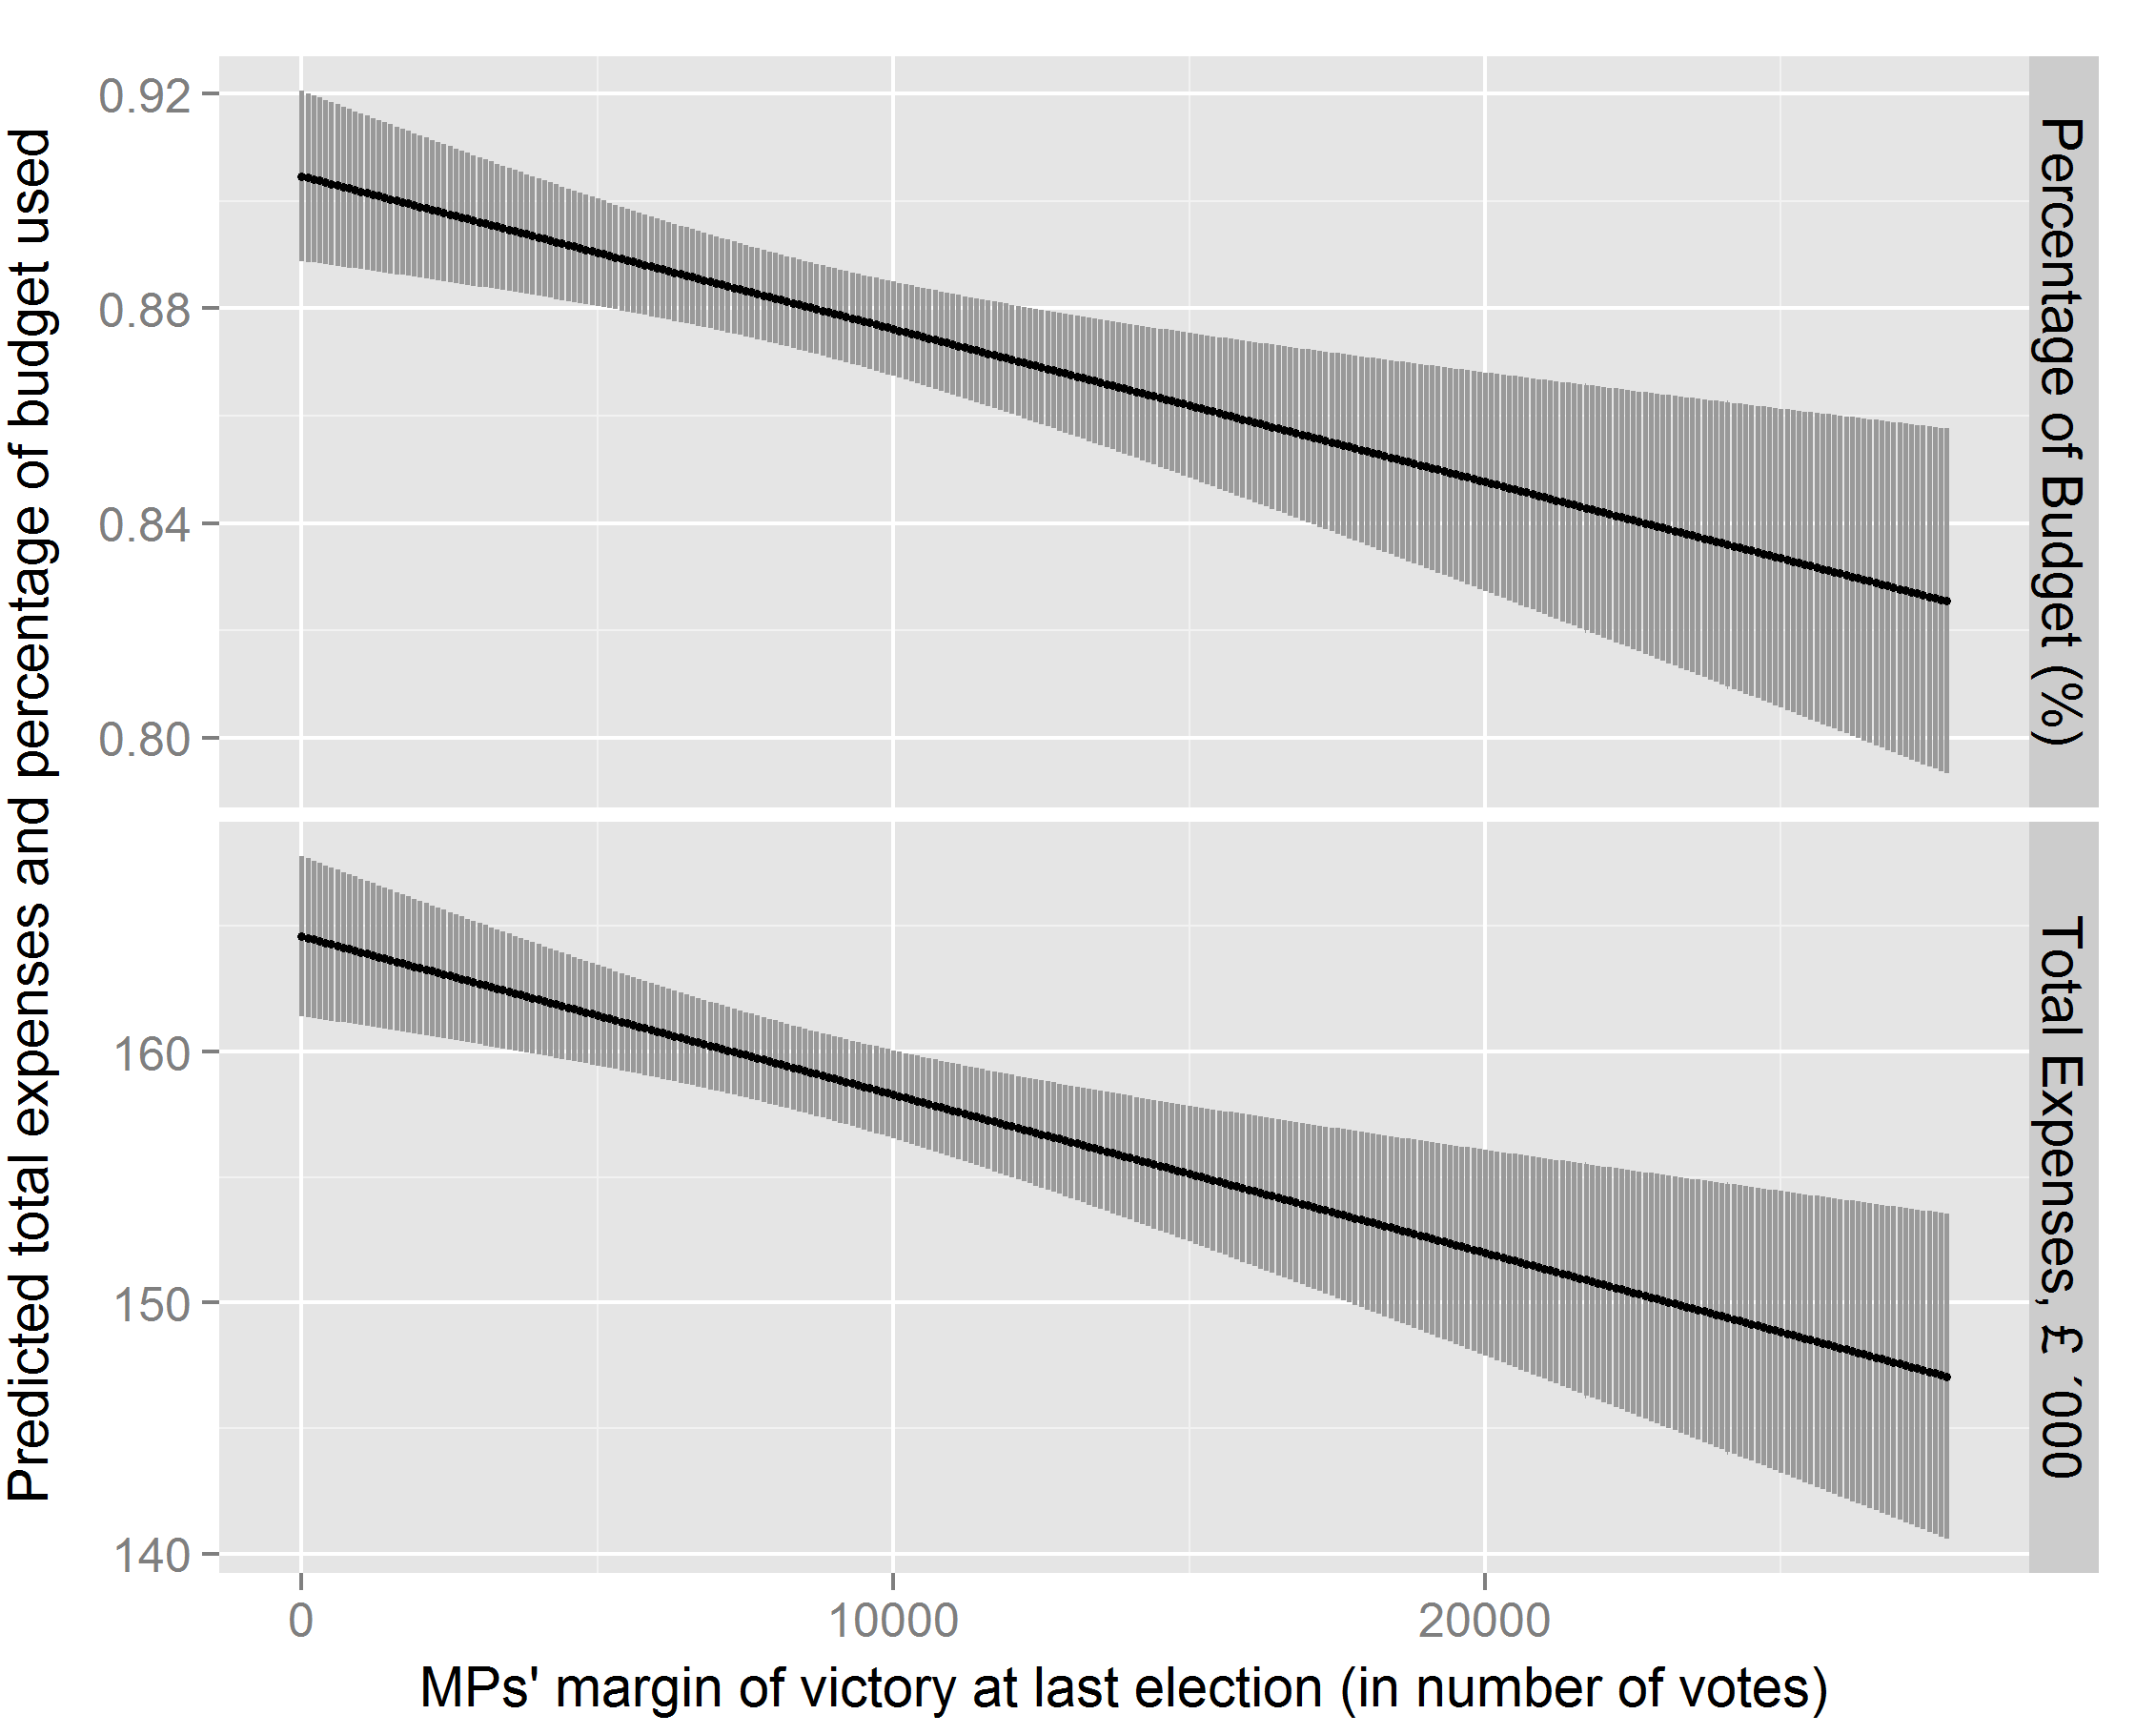 Graph 6: Predicted percentage of budget spent and predicted total expenses (in £'000), by MPs' margin of electoral victory. Other predictors held at means. 95% confidence intervals.